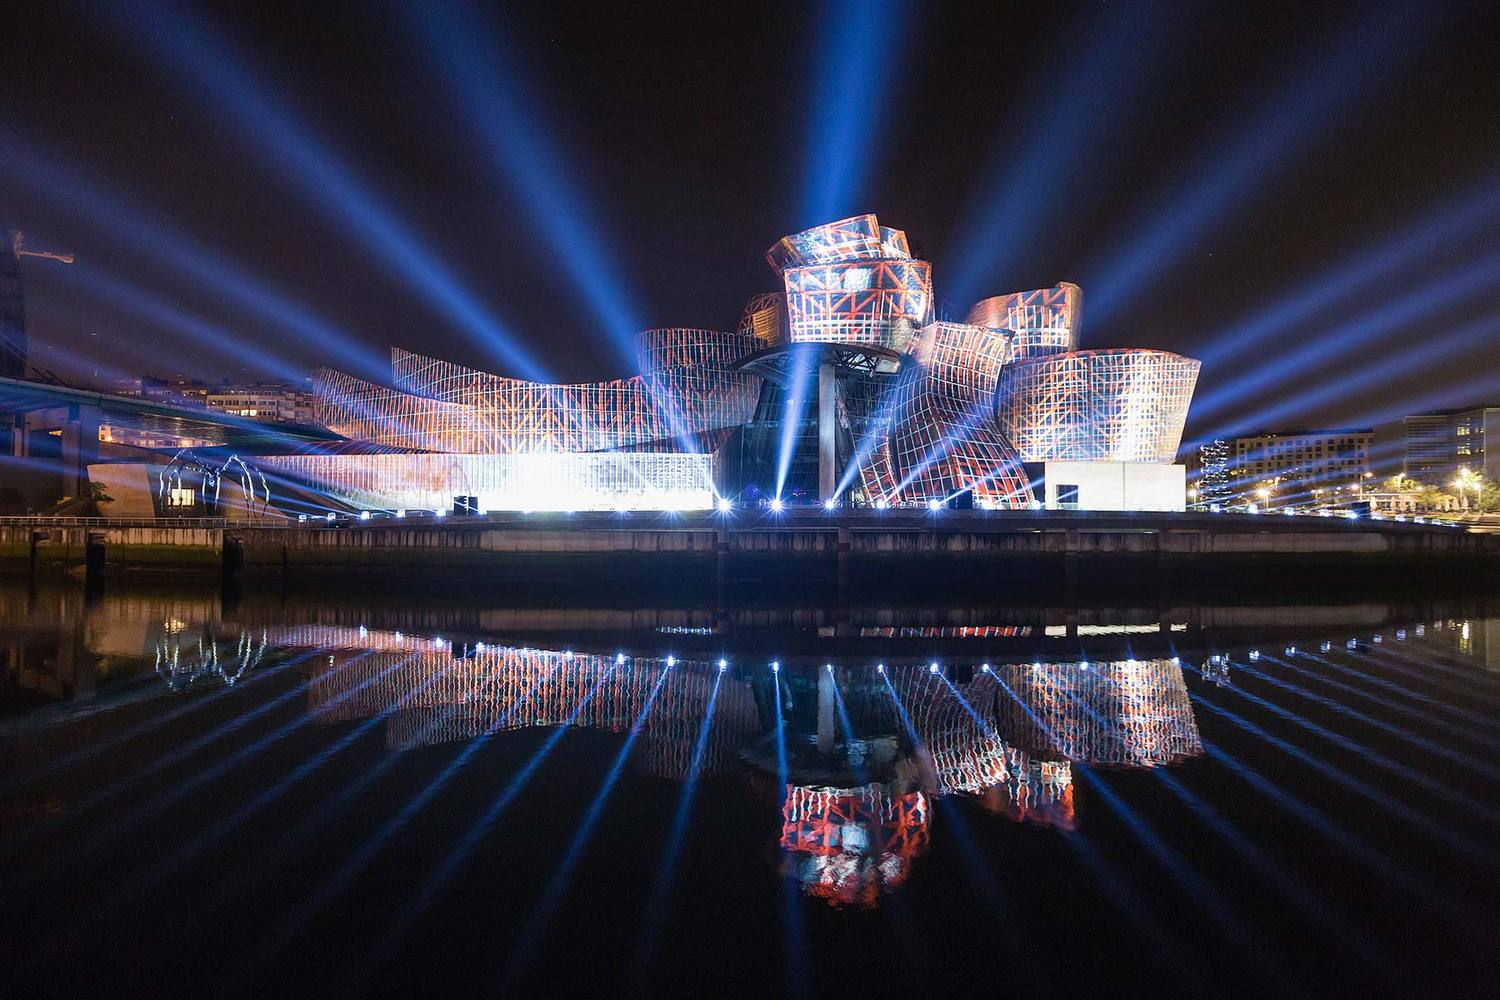 Projection Mapping Light Show Tells the Story of the Guggenheim Bilbao on Its 20th Anniversary,59 Productions transform Guggenheim Museum Bilbao with Reflections, a spectacular projection-mapping event to celebrate its 20th anniversary. Photo by Justin Sutcliffe.